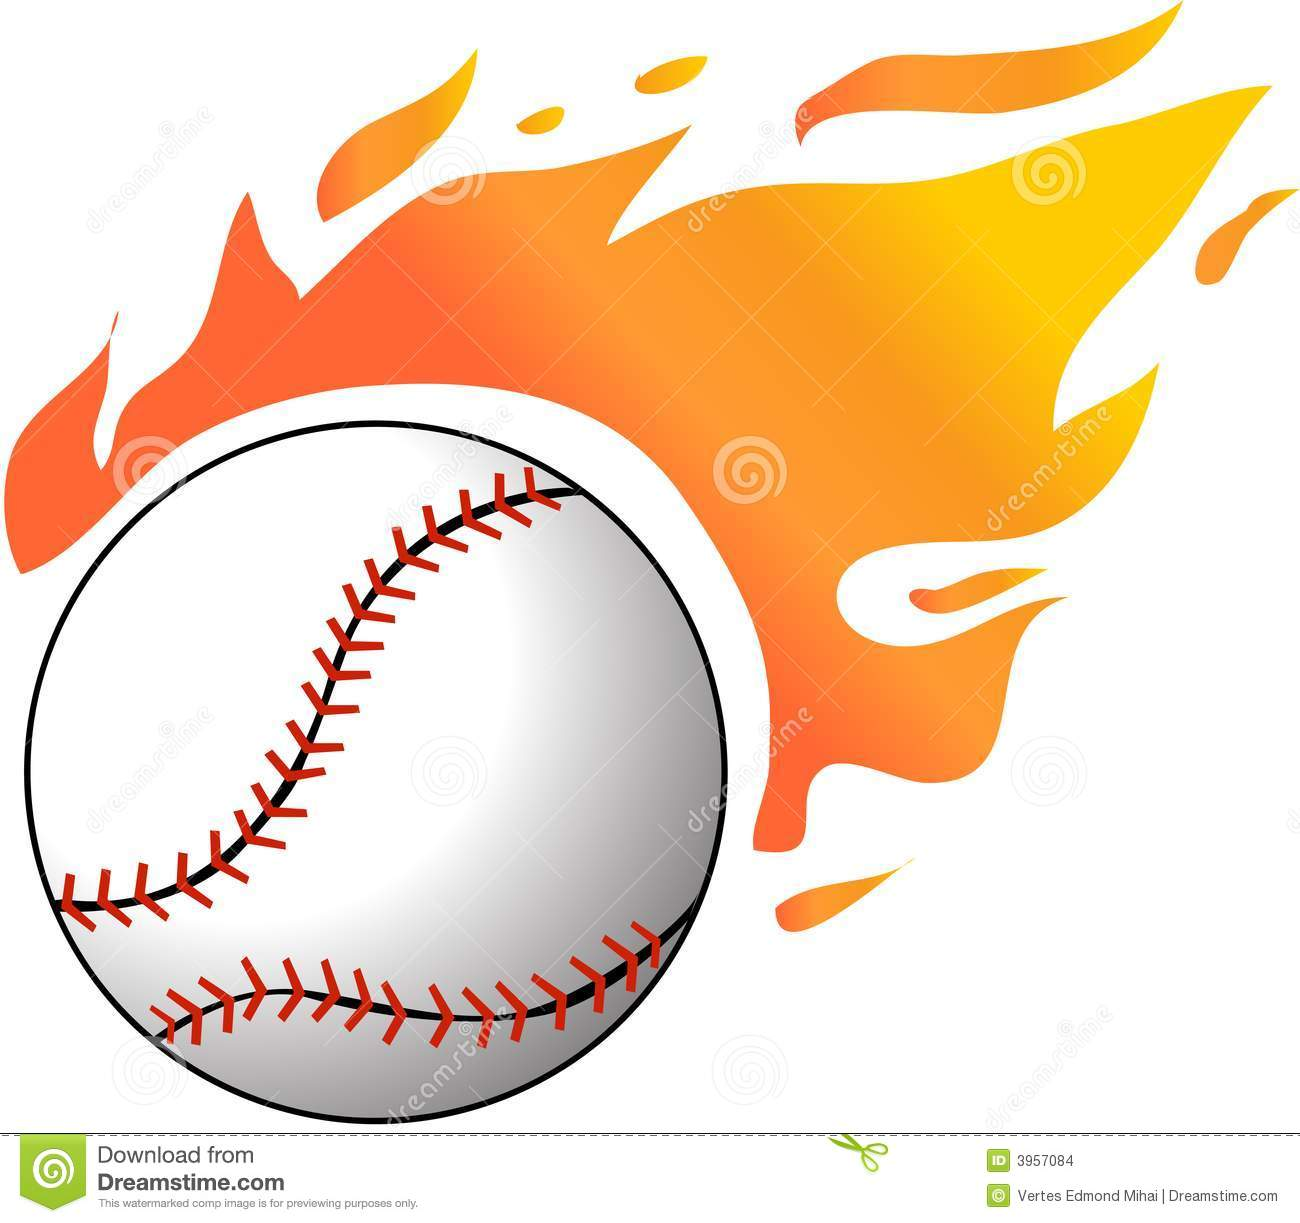 Flaming baseball clipart svg free Flaming Baseball Clipart - Clipart Kid svg free